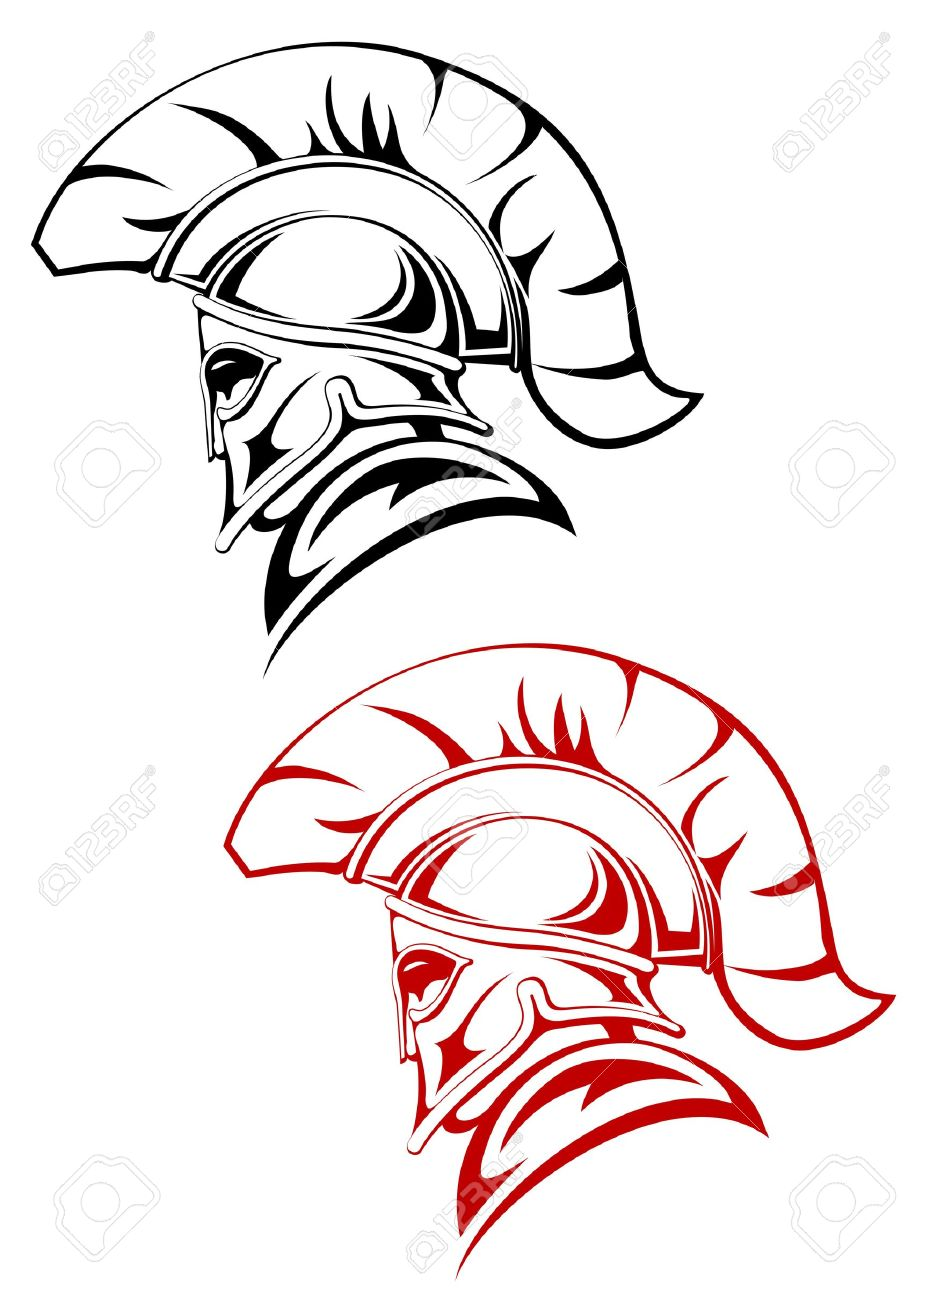 Ancient Warrior Symbol As A Concept Of Security Or Power Royalty